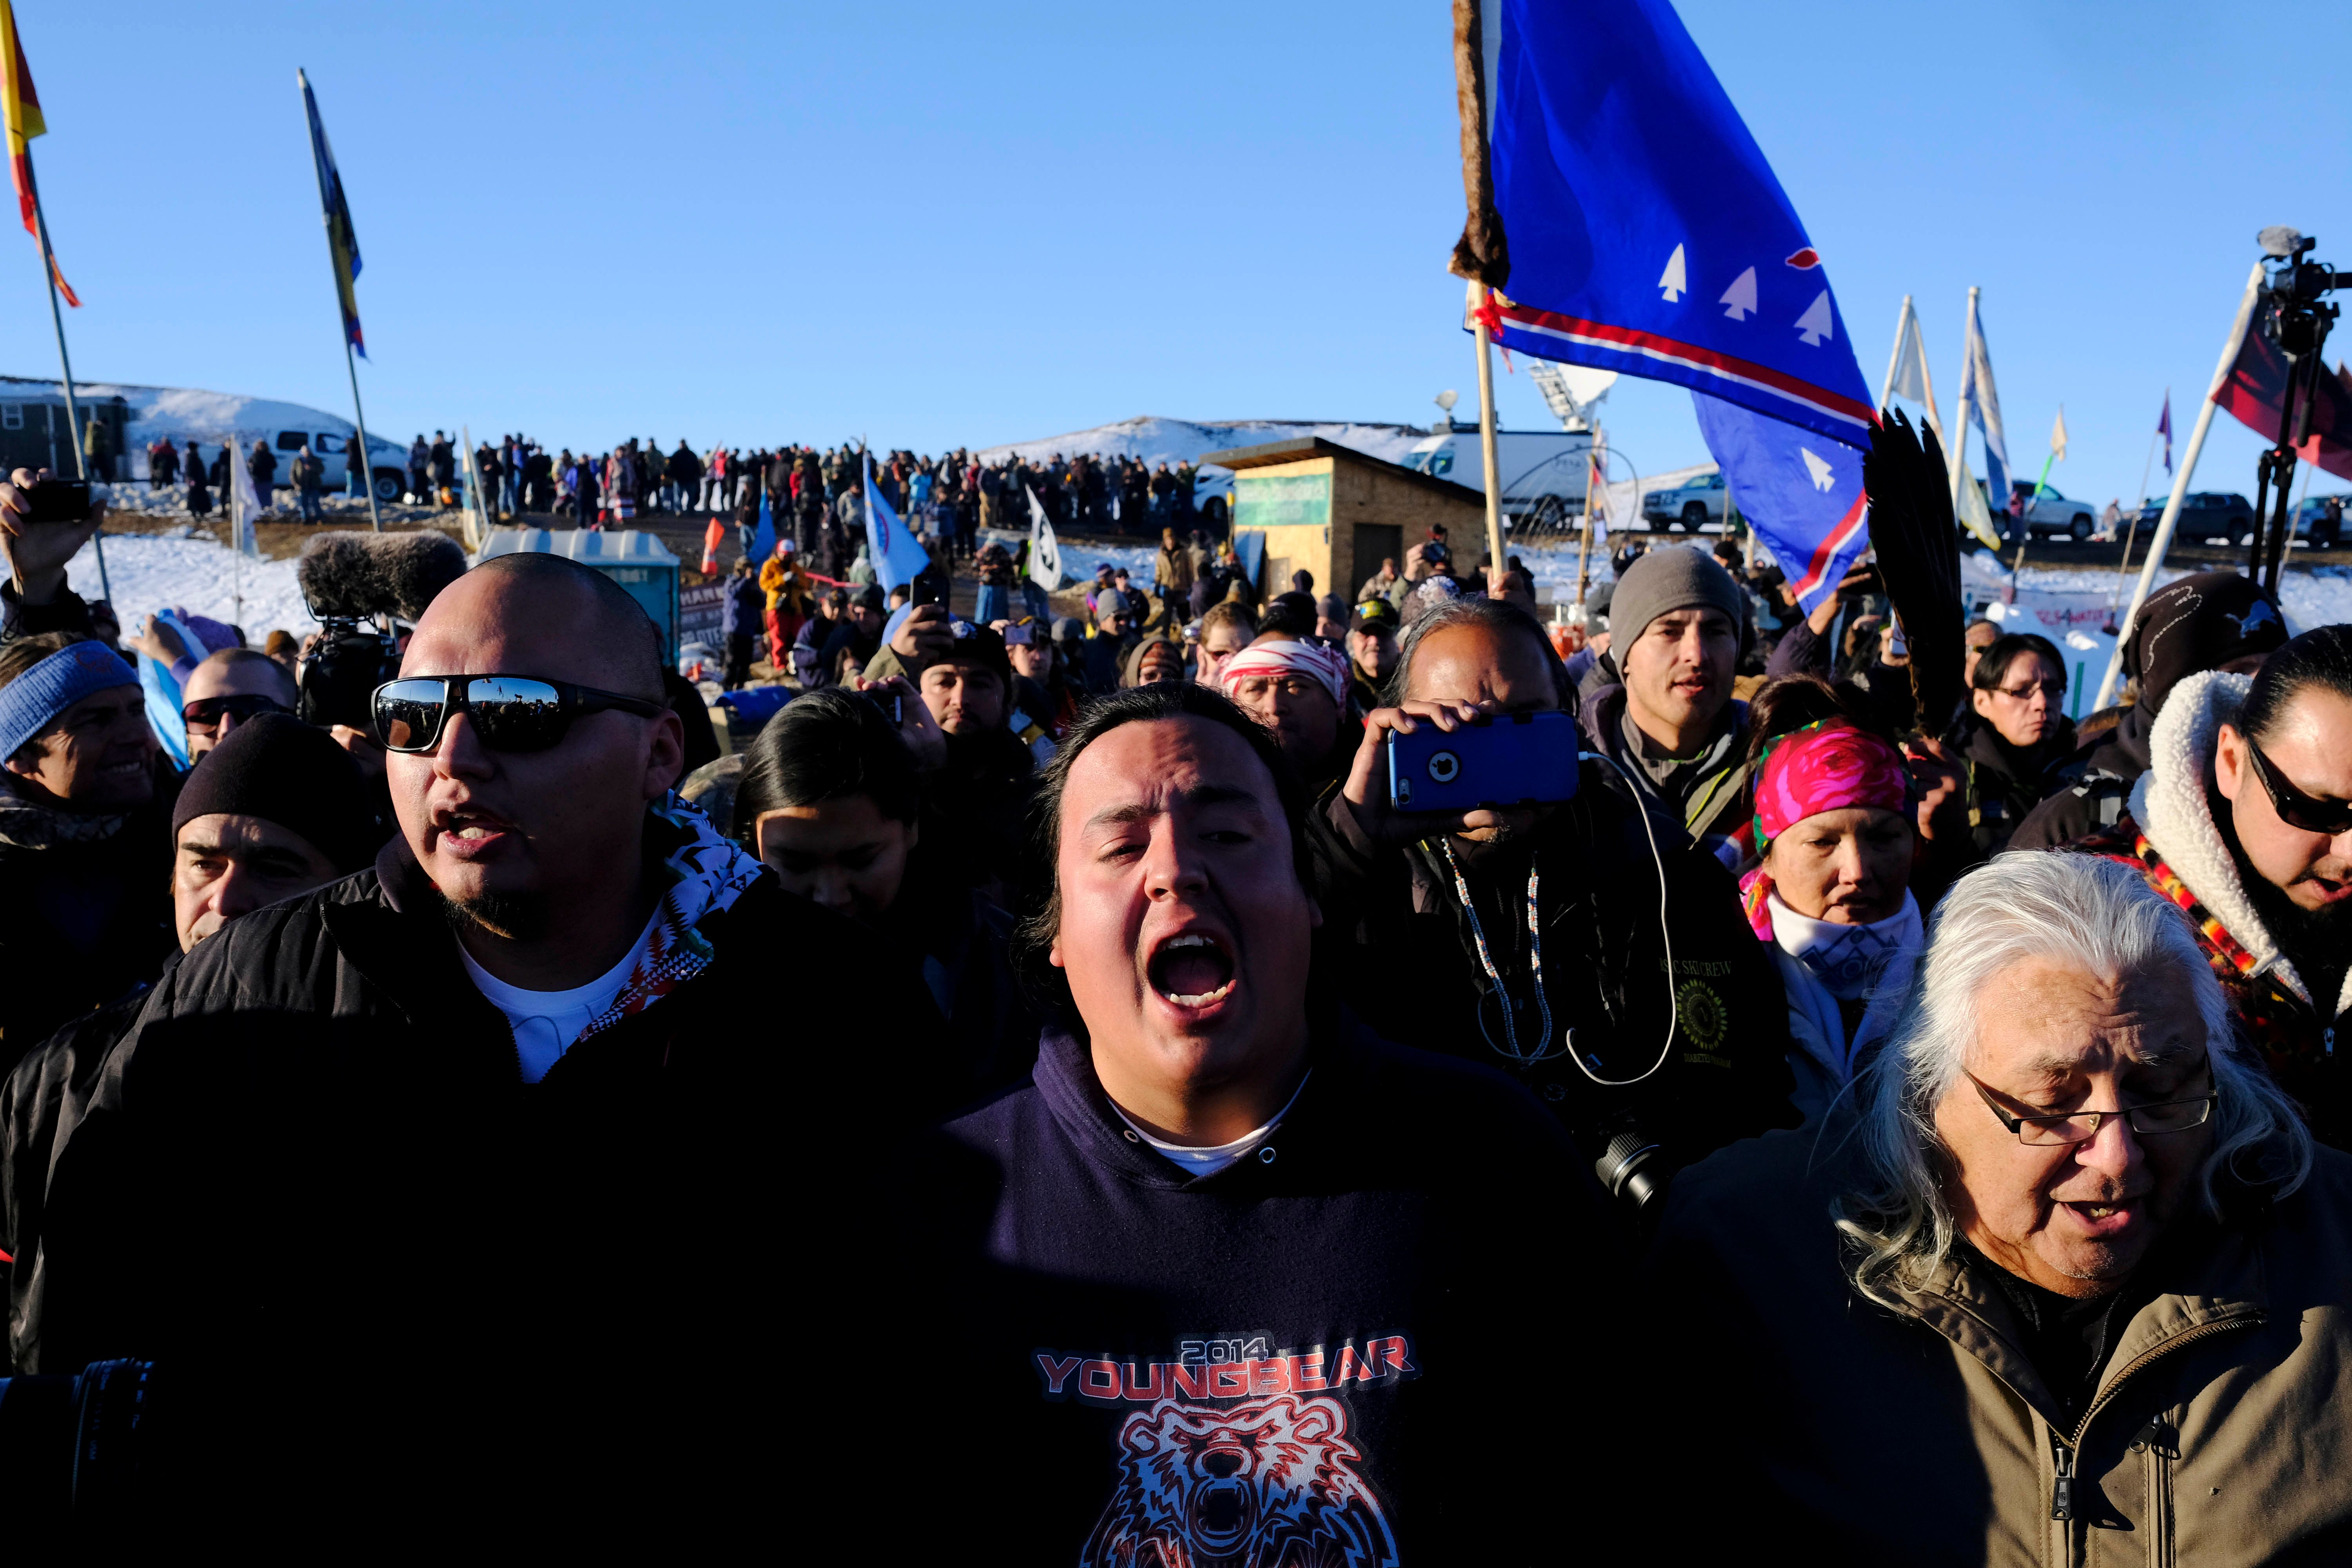 Dakota Access Pipeline protesters celebrate as they march back to the Oceti Sakowin campground after they found out the Army